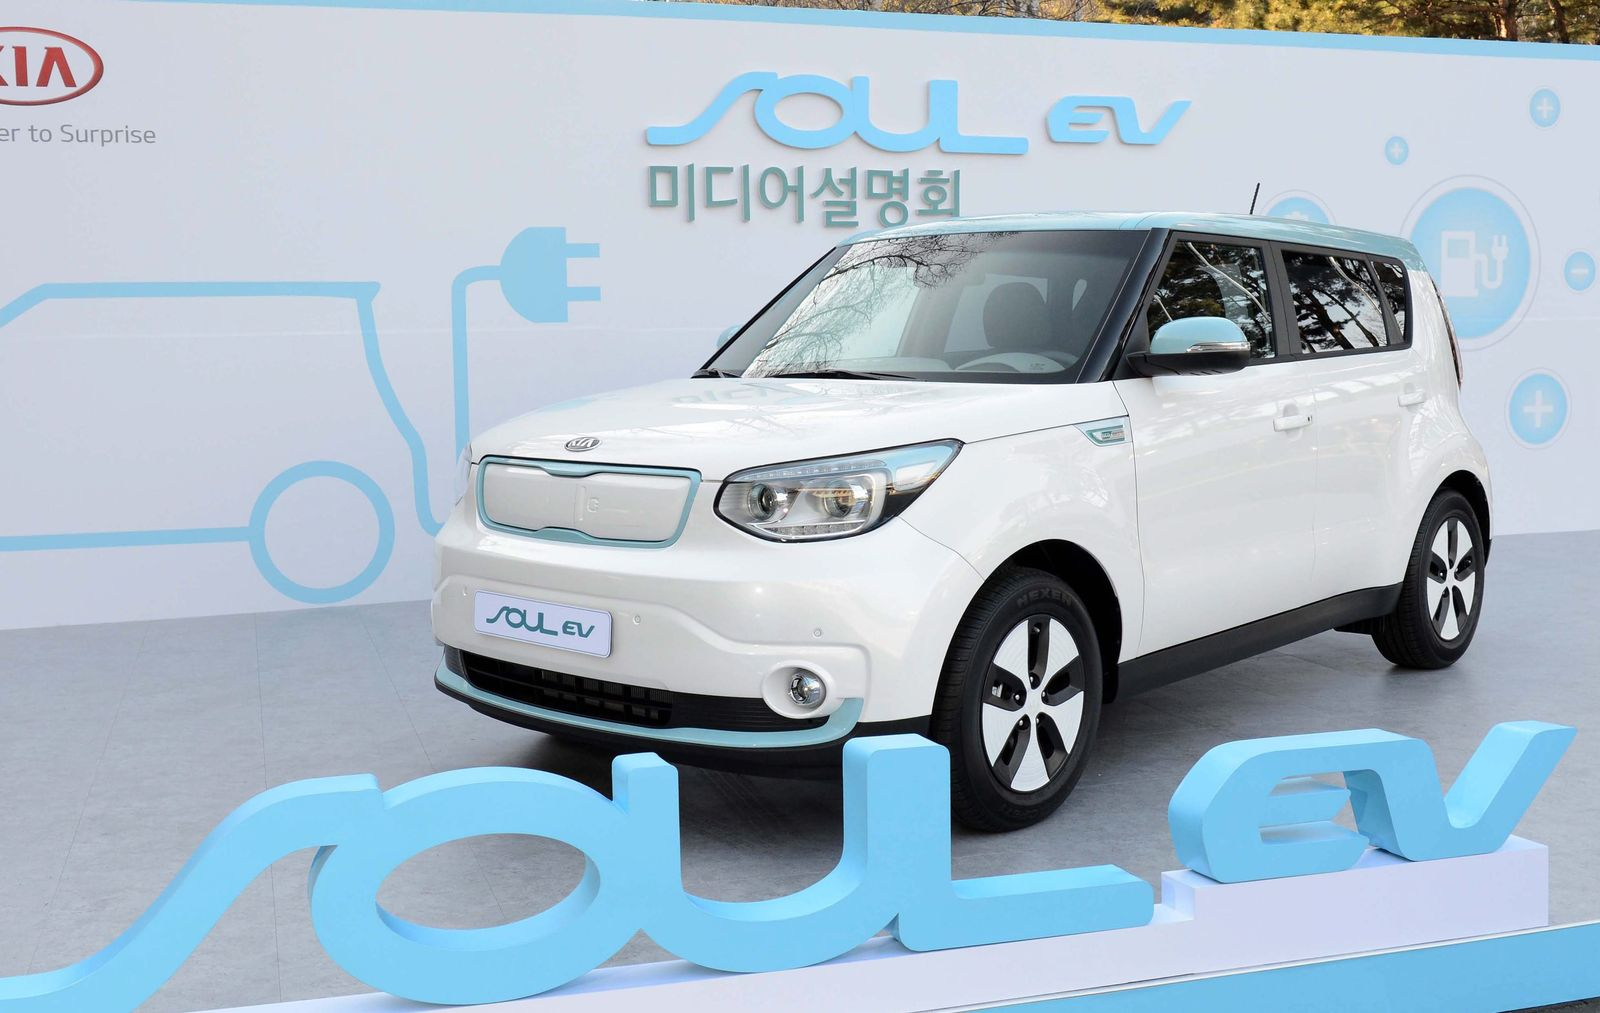 Kias Soul electric vehicle